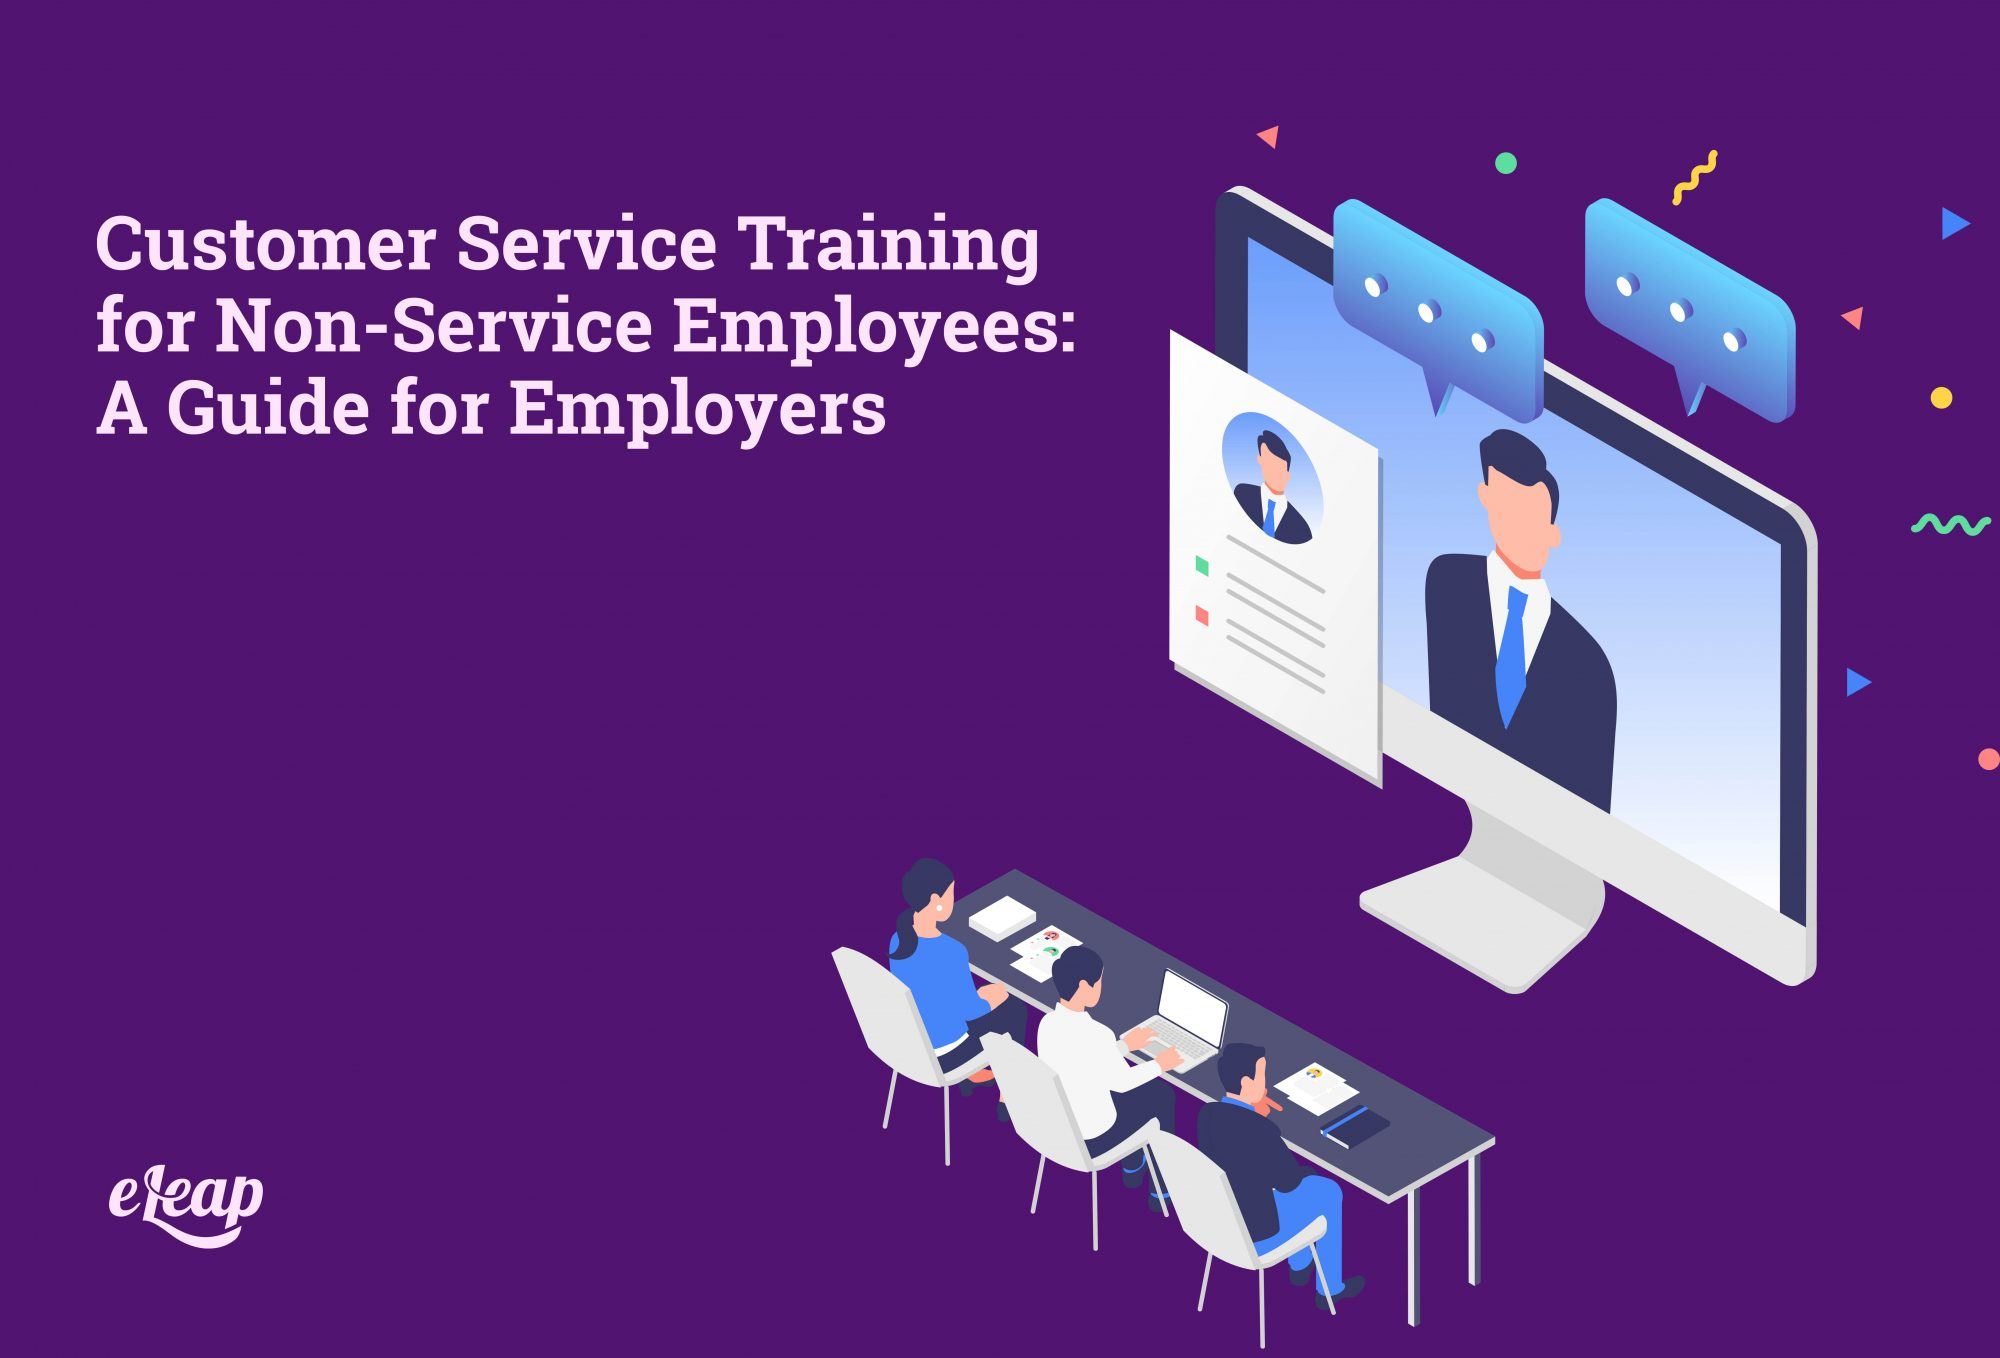 Customer Service Training for Non-Service Employees